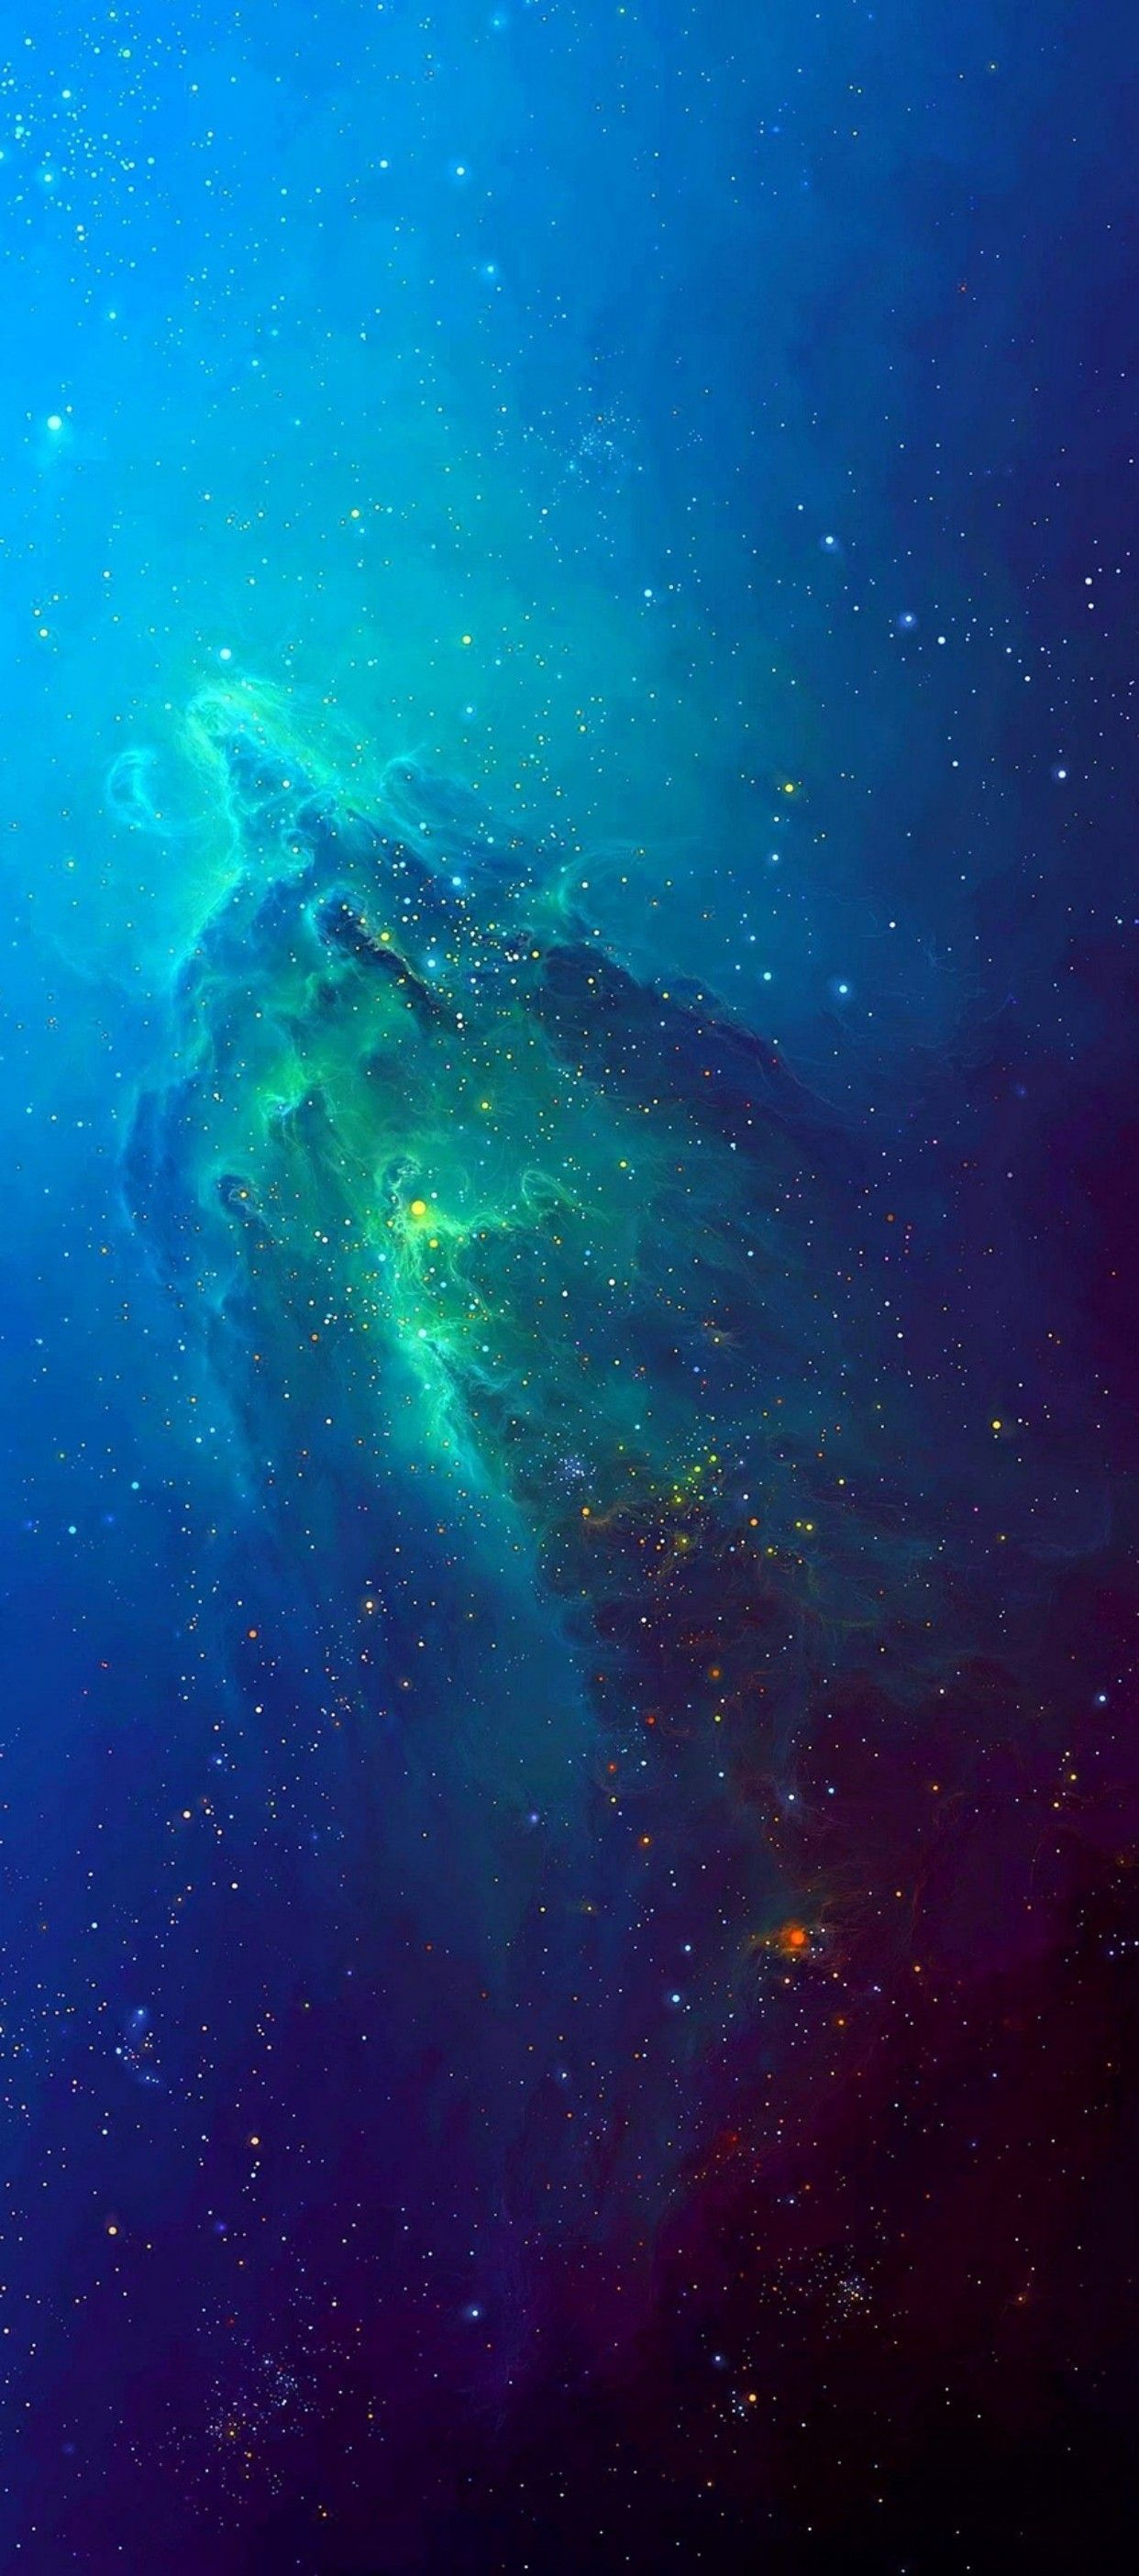 iOS 11, iPhone X, stars, space, blue, aqua, abstract